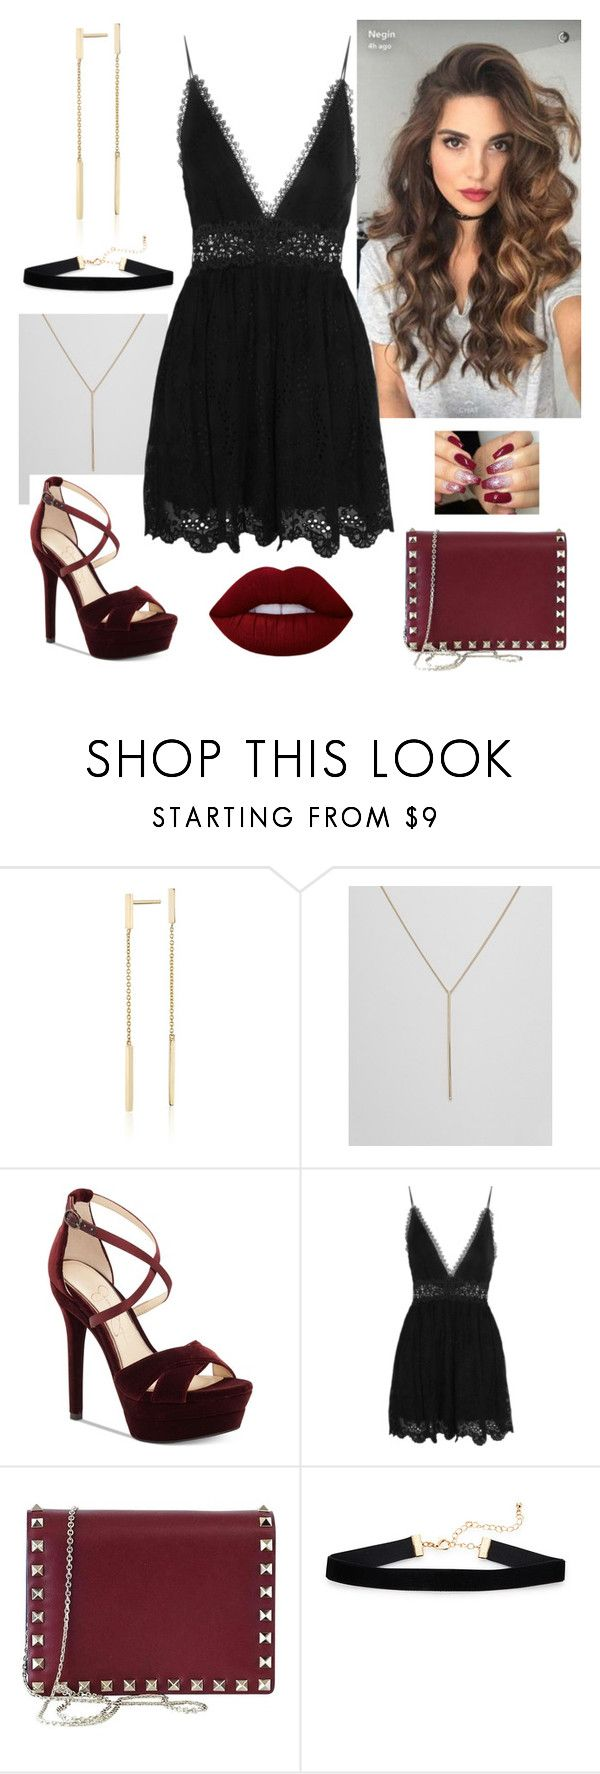 """""""New year night out"""" by paoladouka on Polyvore featuring Blue Nile, Fiorelli, Jessica Simpson, Zimmermann, Valentino and Lime Crime"""